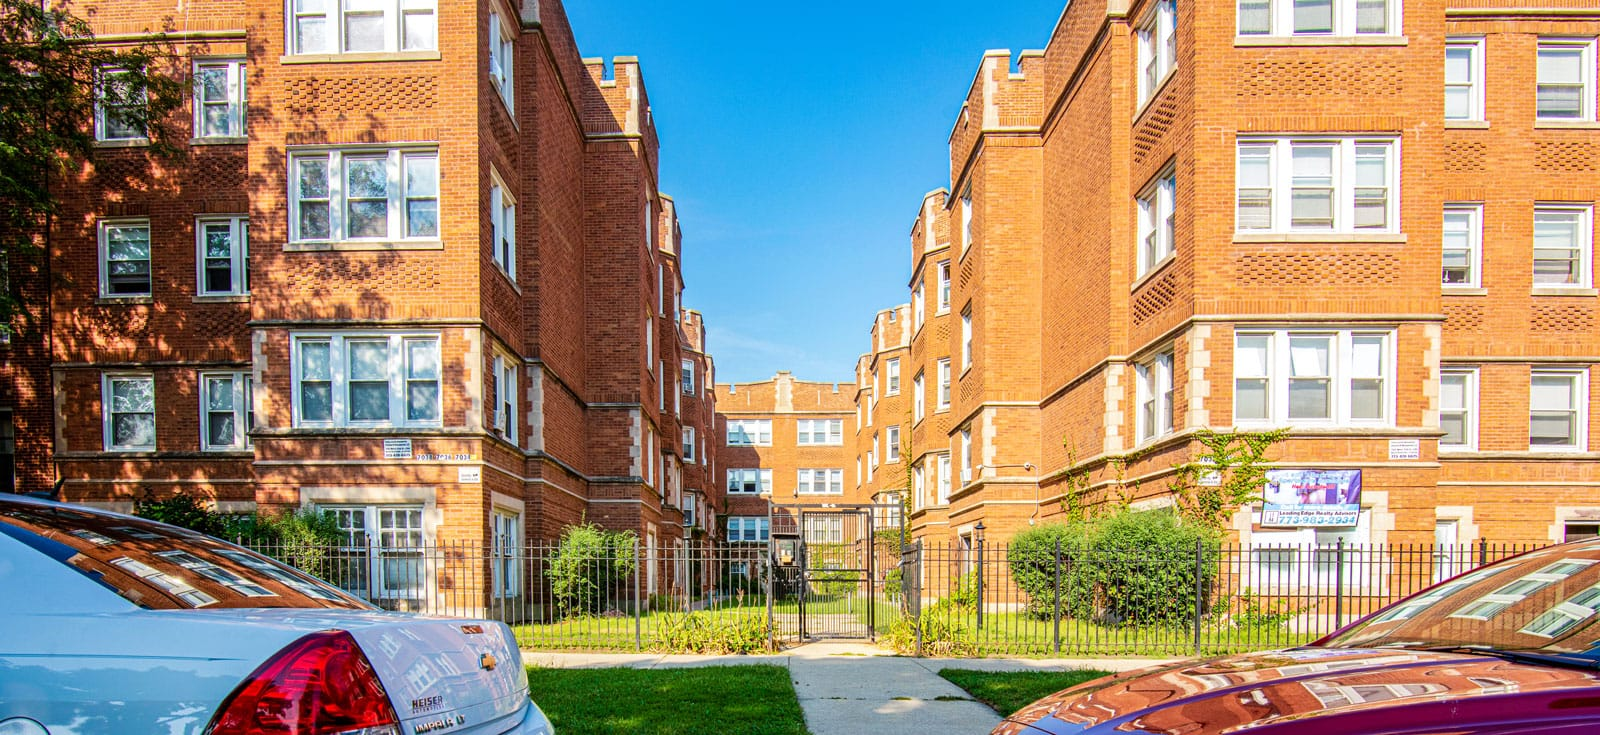 The 1920s courtyard apartment building in Chicago's South Shore that Muhammad Ali lived in with his first wife, Sonji Roi